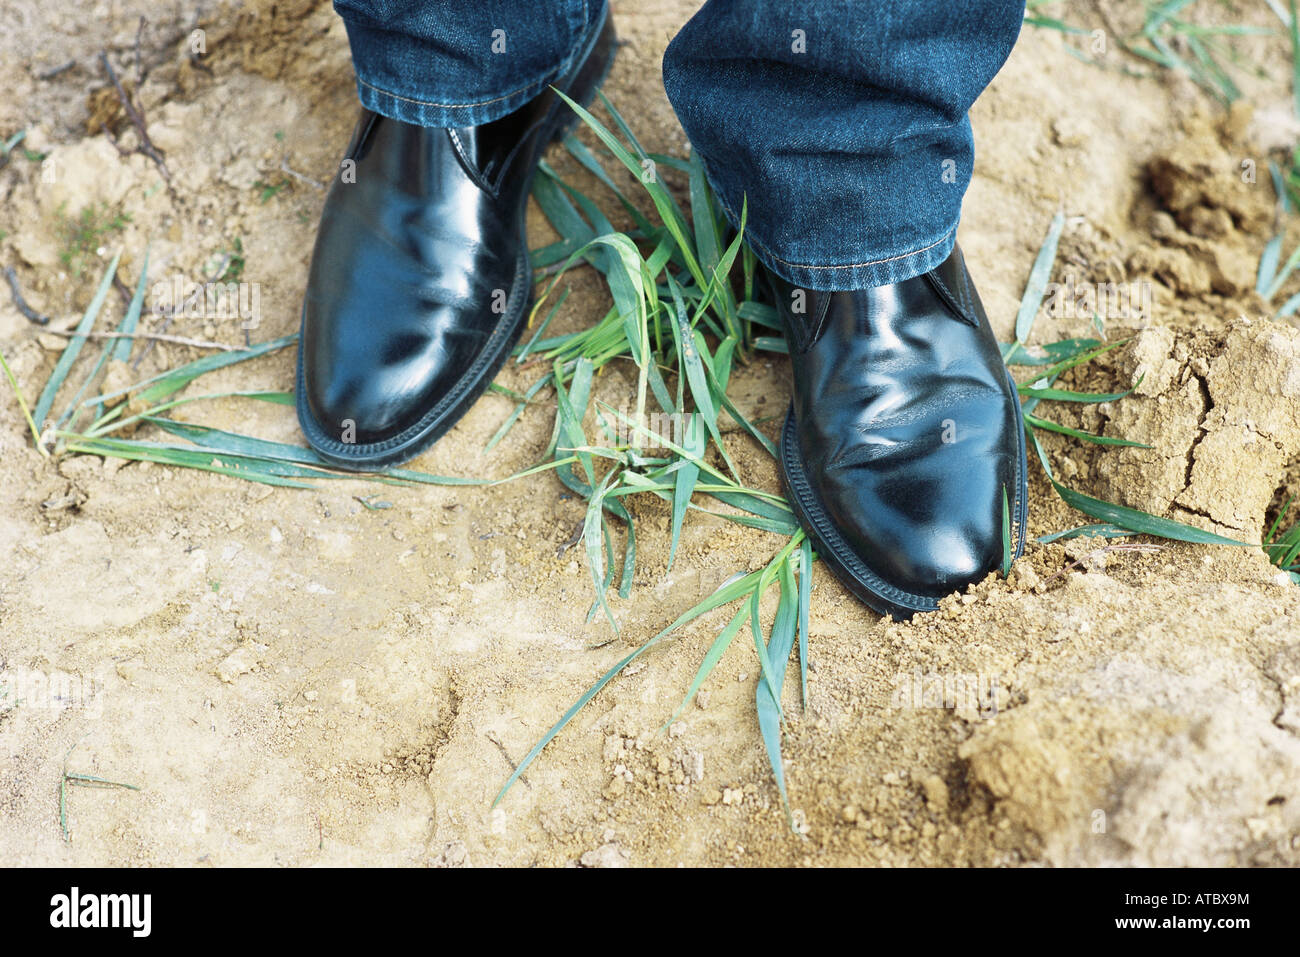 Person wearing black dress shoes standing on top of grass, cropped view - Stock Image